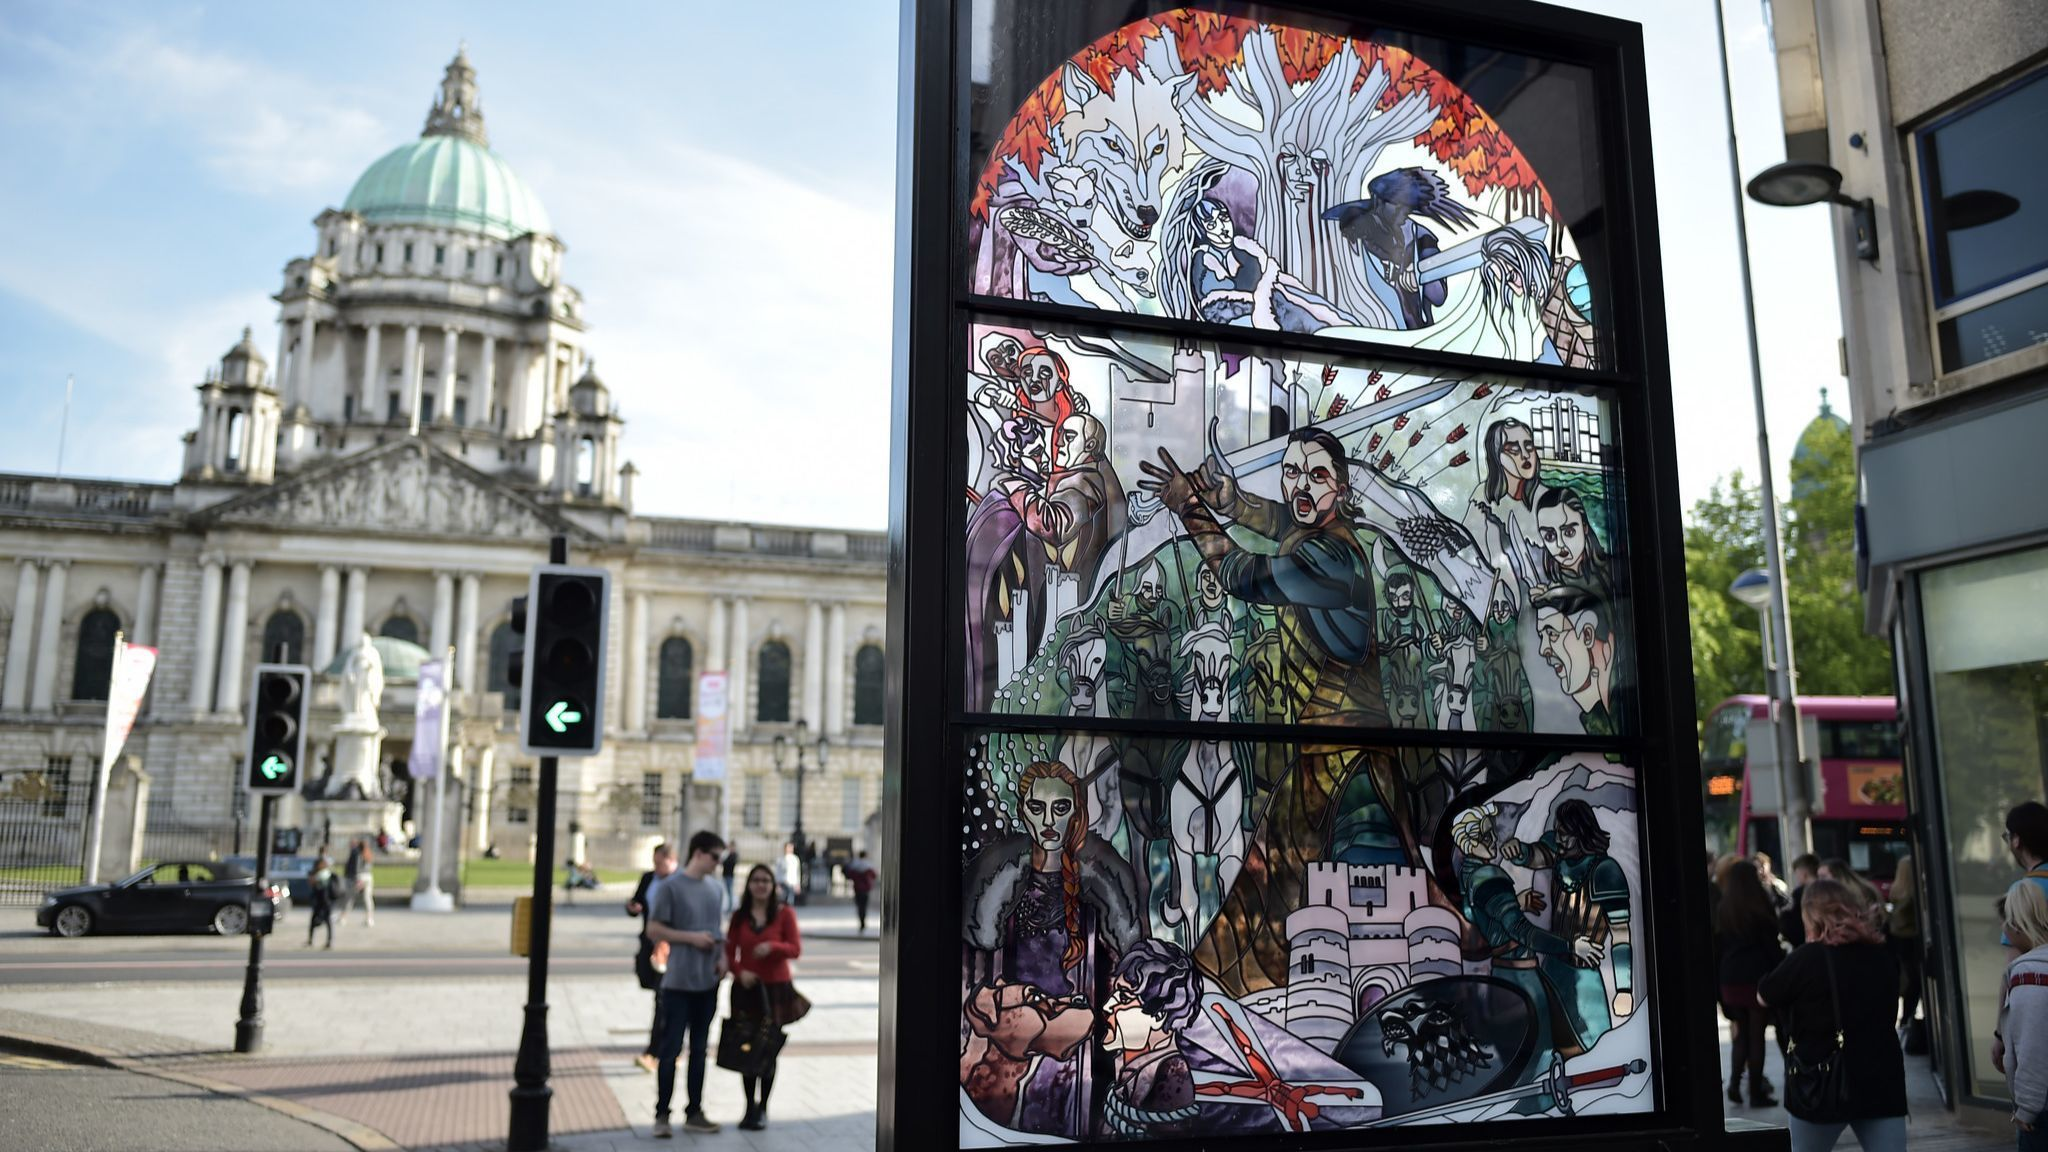 A stained glass art installation depicting scenes from